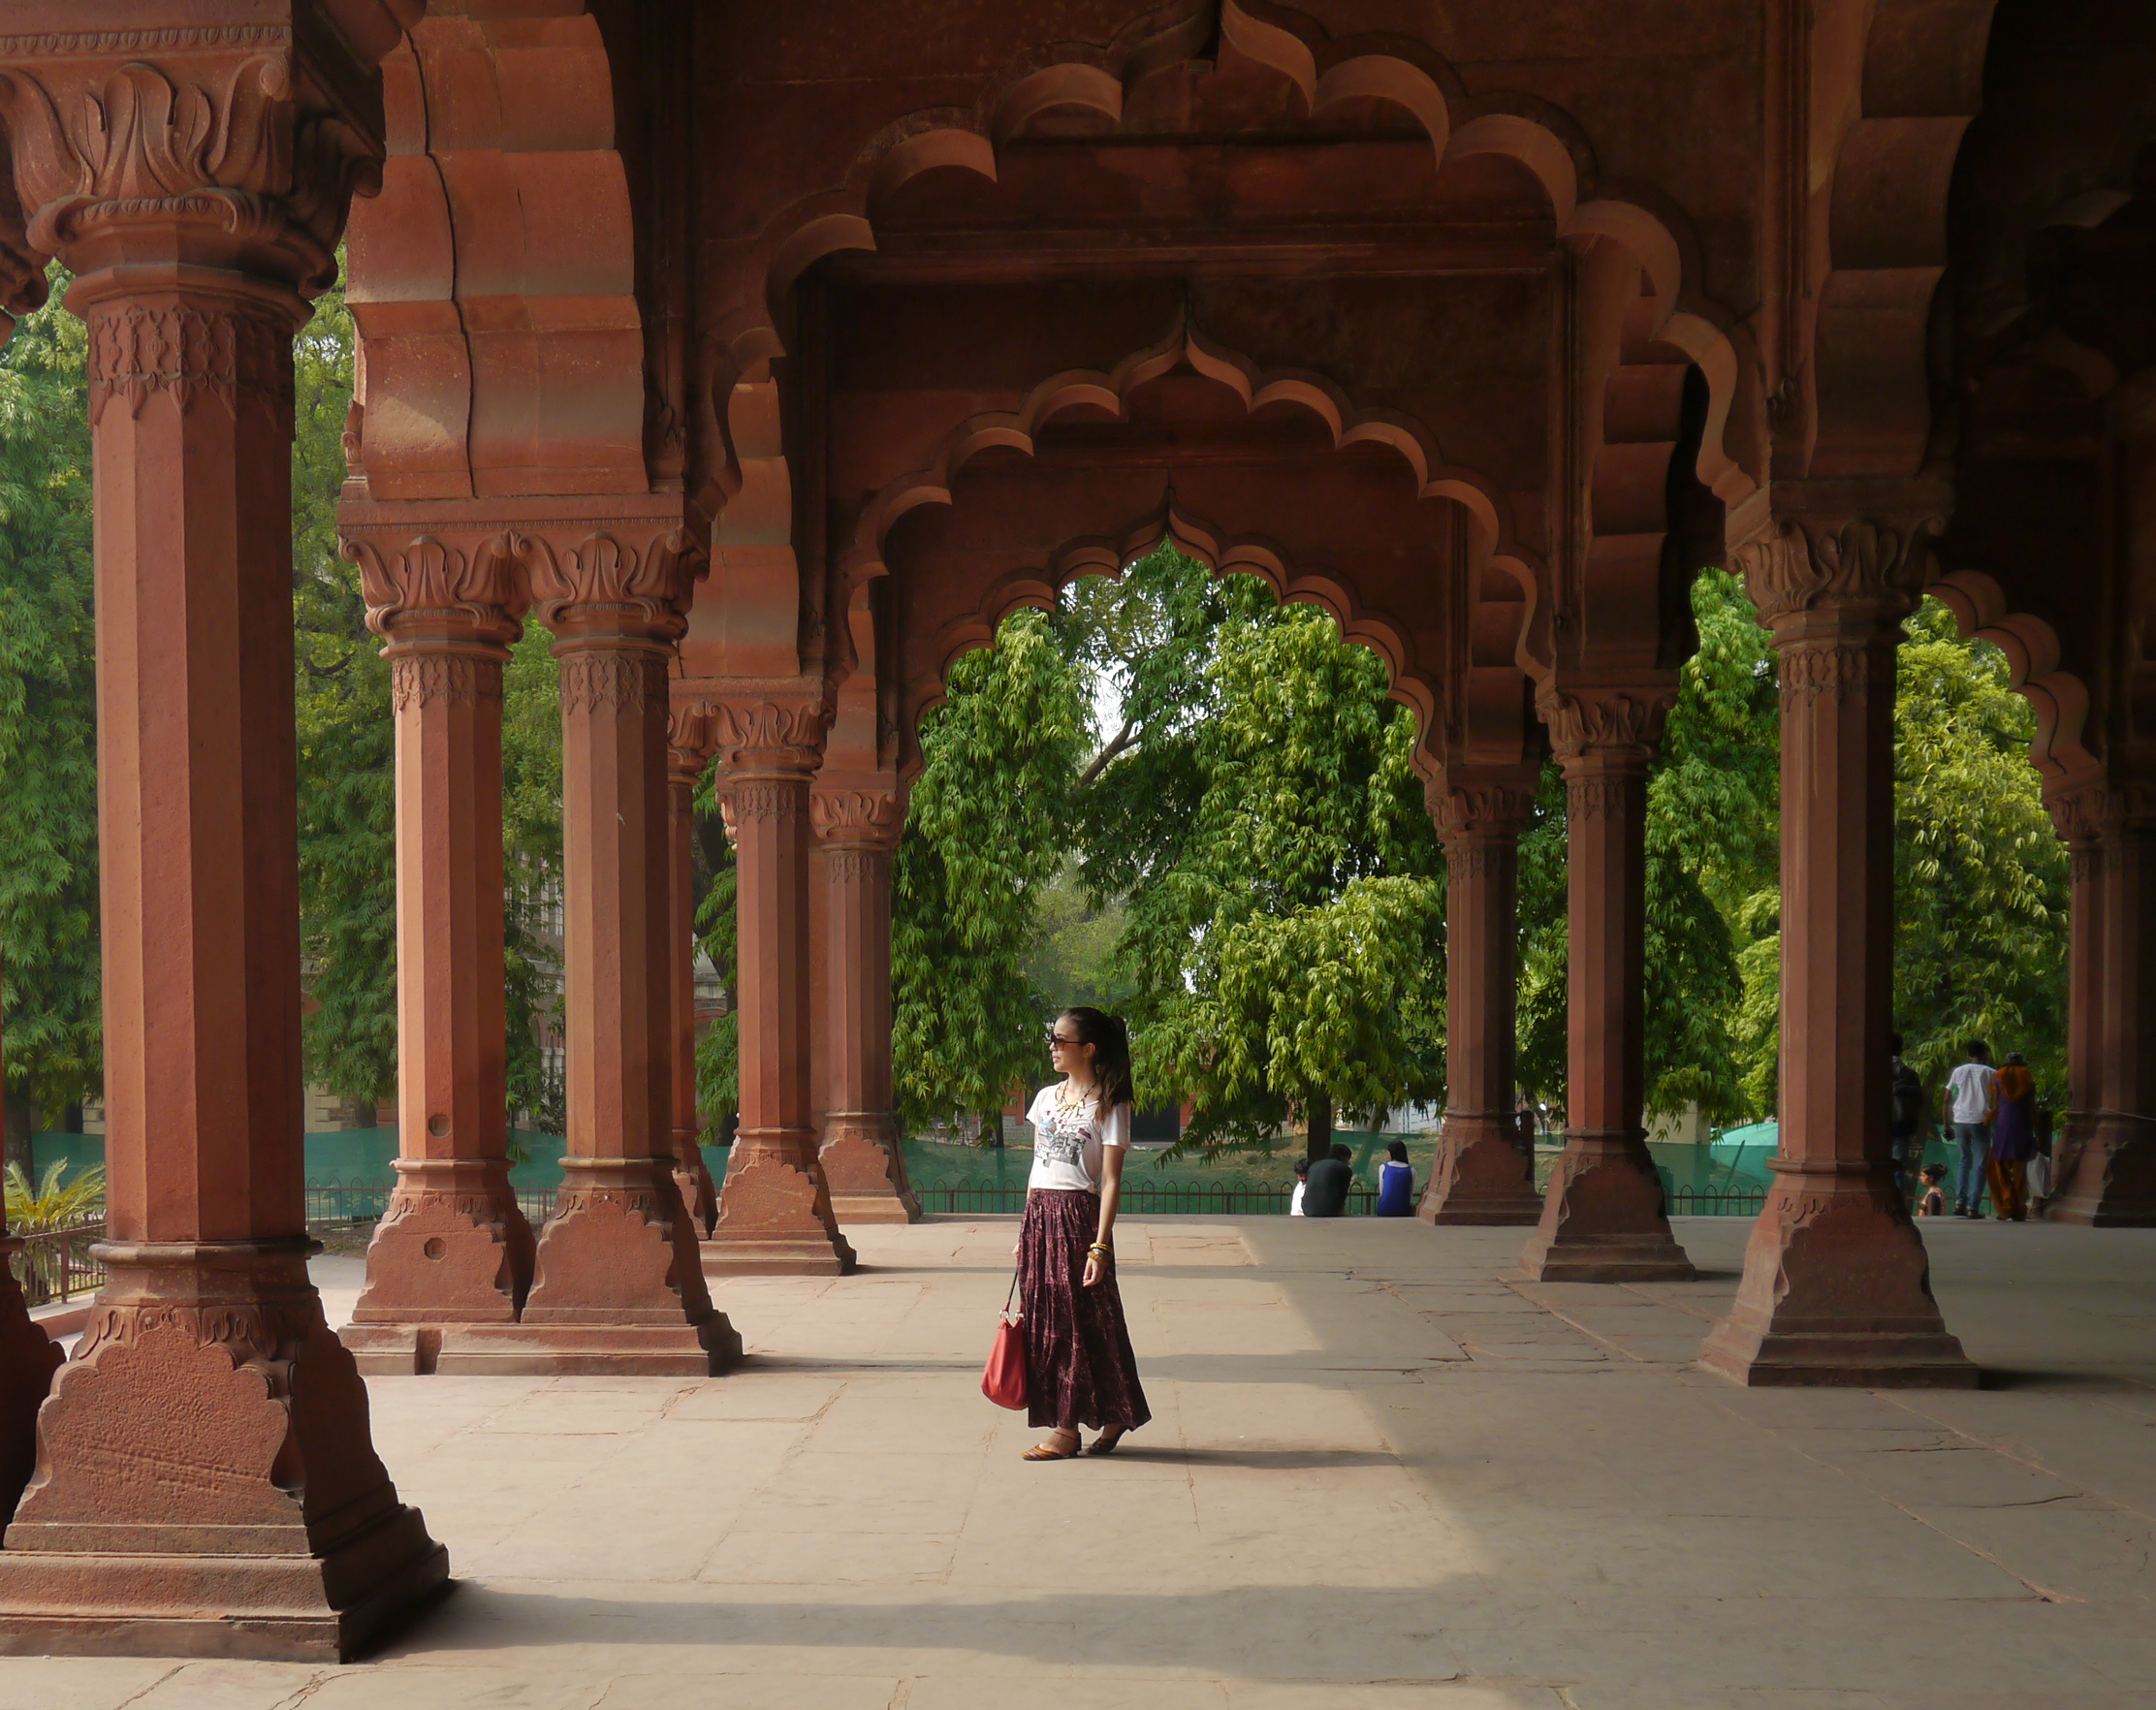 Red Fort, Red fort in Delhi, Delhis Red Fort, Tourism in Delhi, Travel India, visit Delhi, Monuments in Delhi